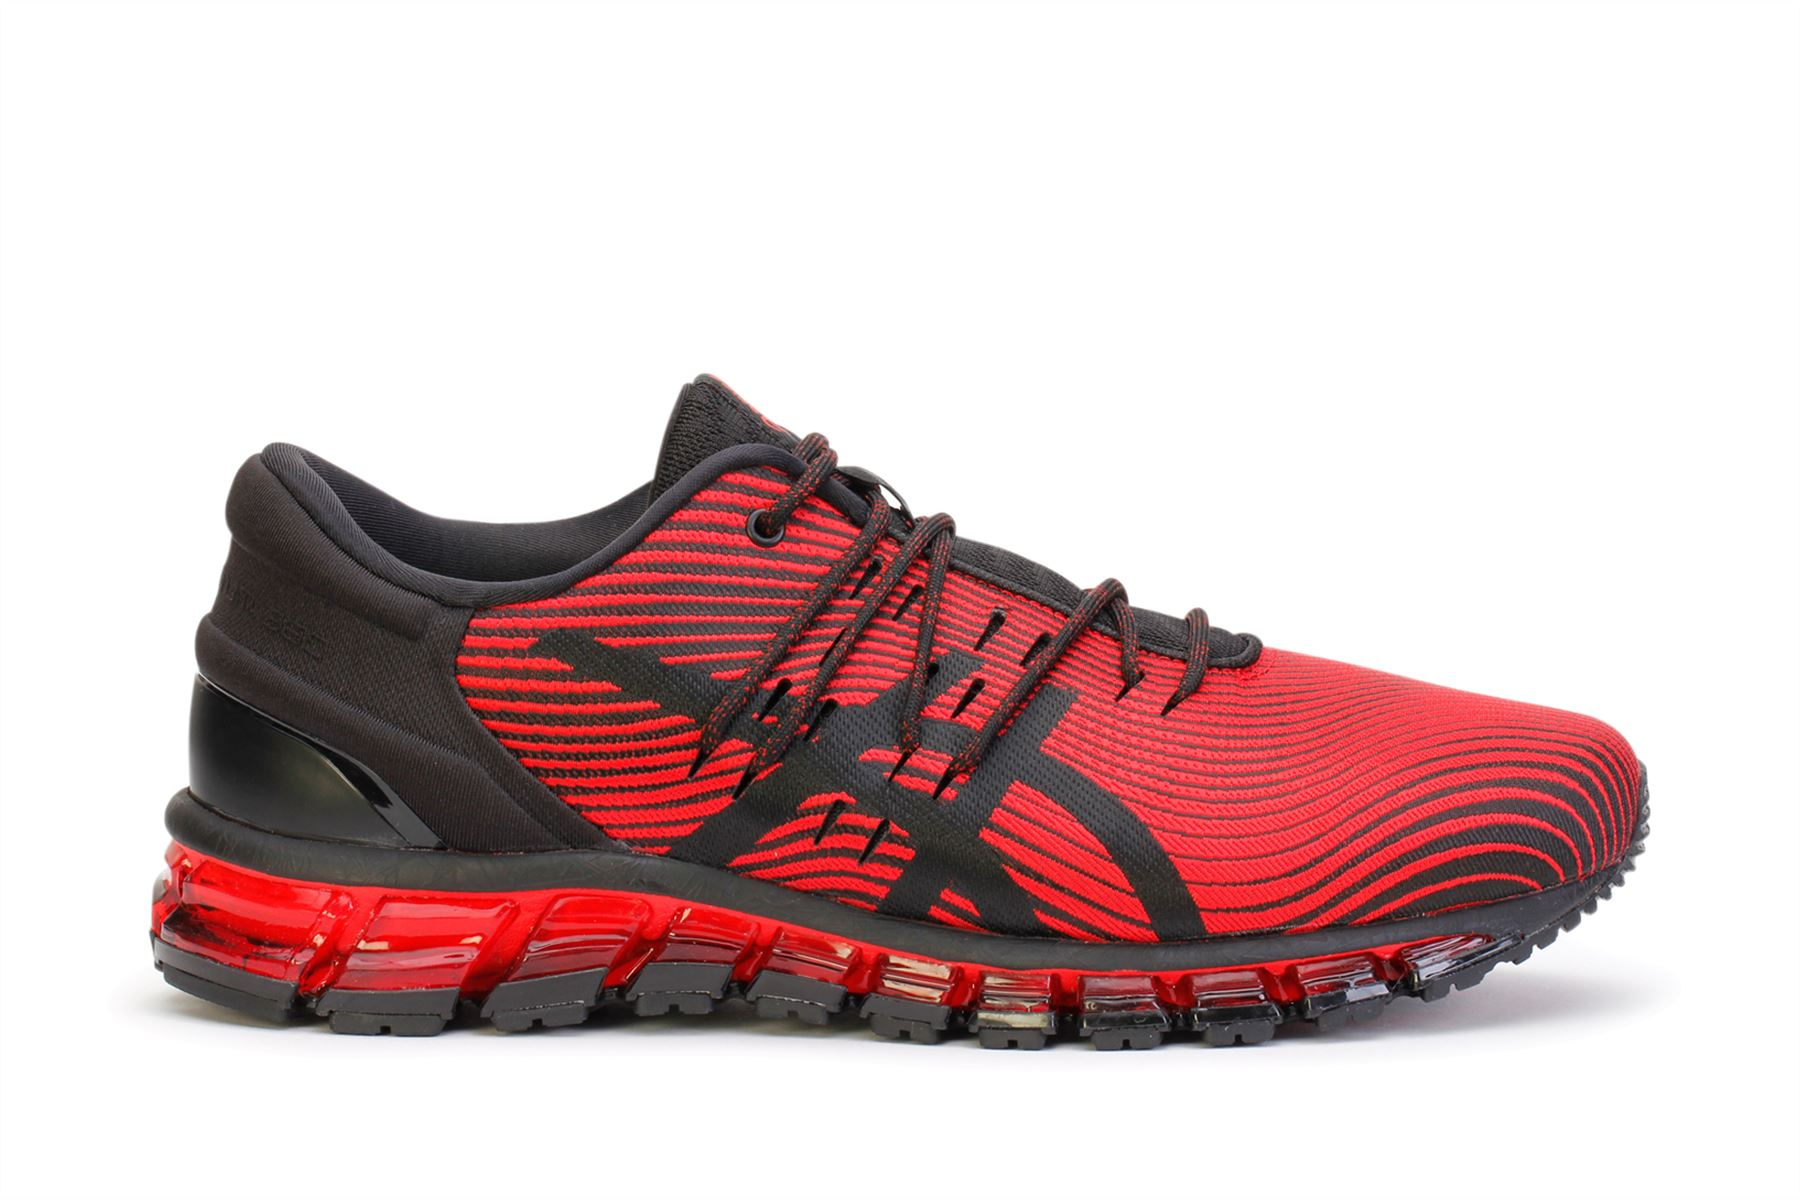 outlet store 5731f 581f5 Asics Men s Running Sneakers Gel-Quantum 360 4 Red Alert Black